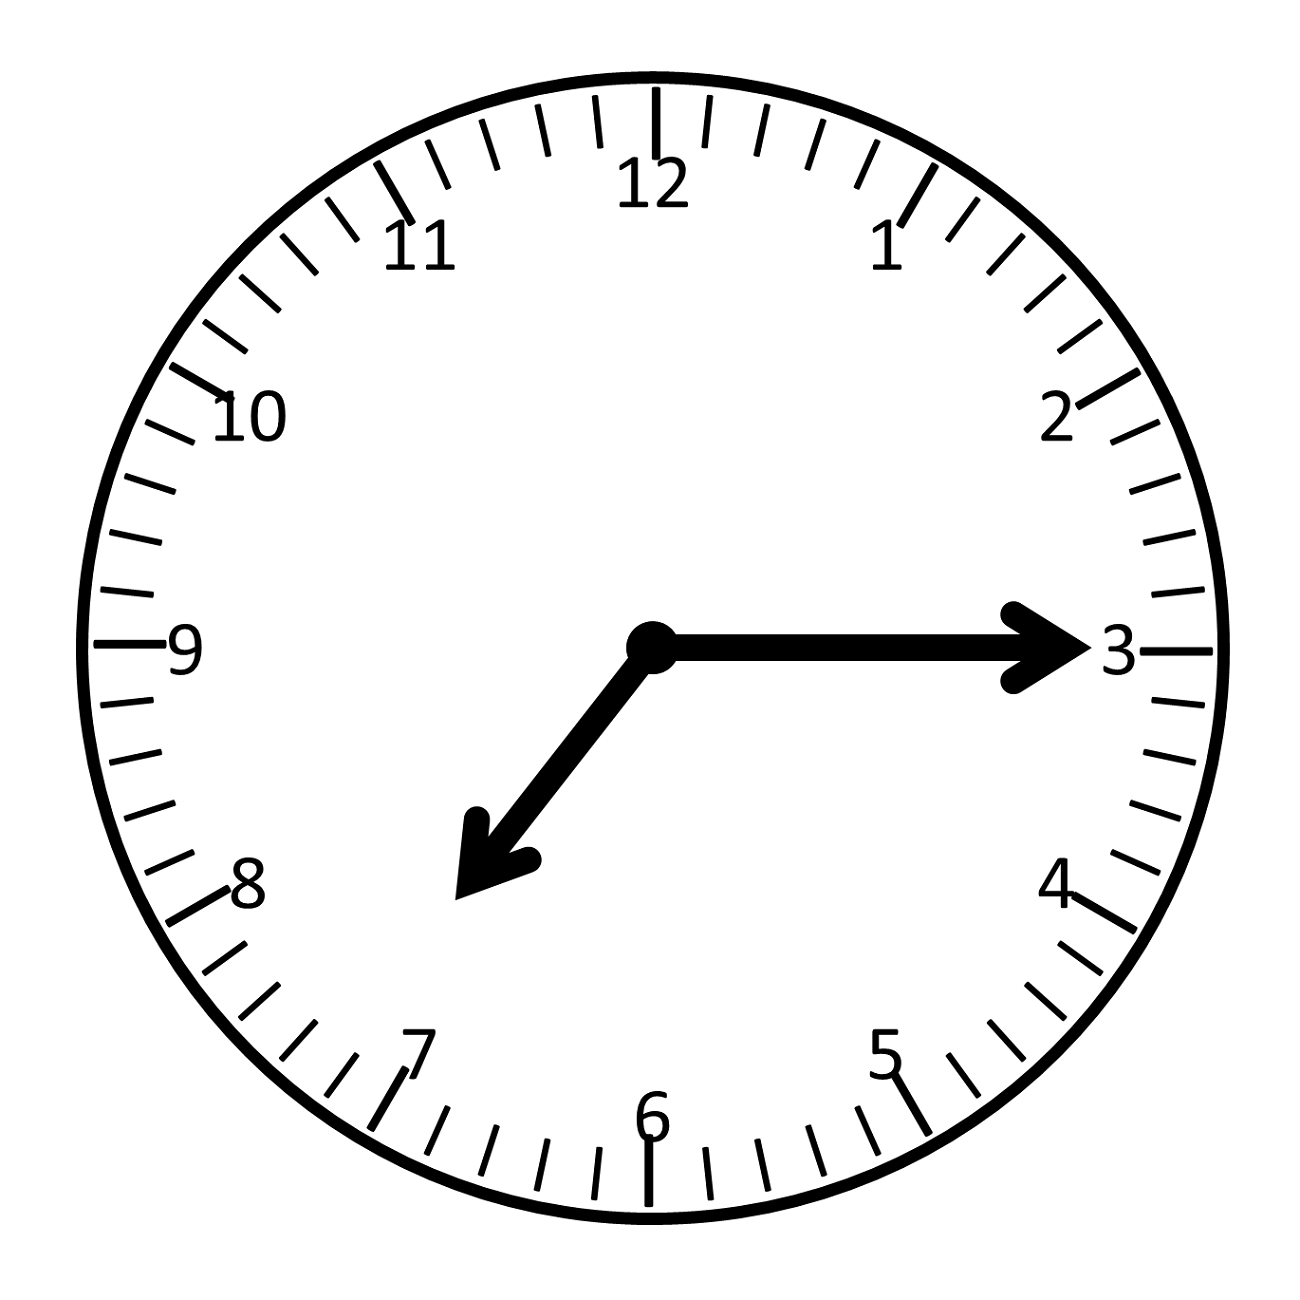 image regarding Printable Clock Face Template known as Absolutely free and Printable Clock Faces Templates Game Shelter